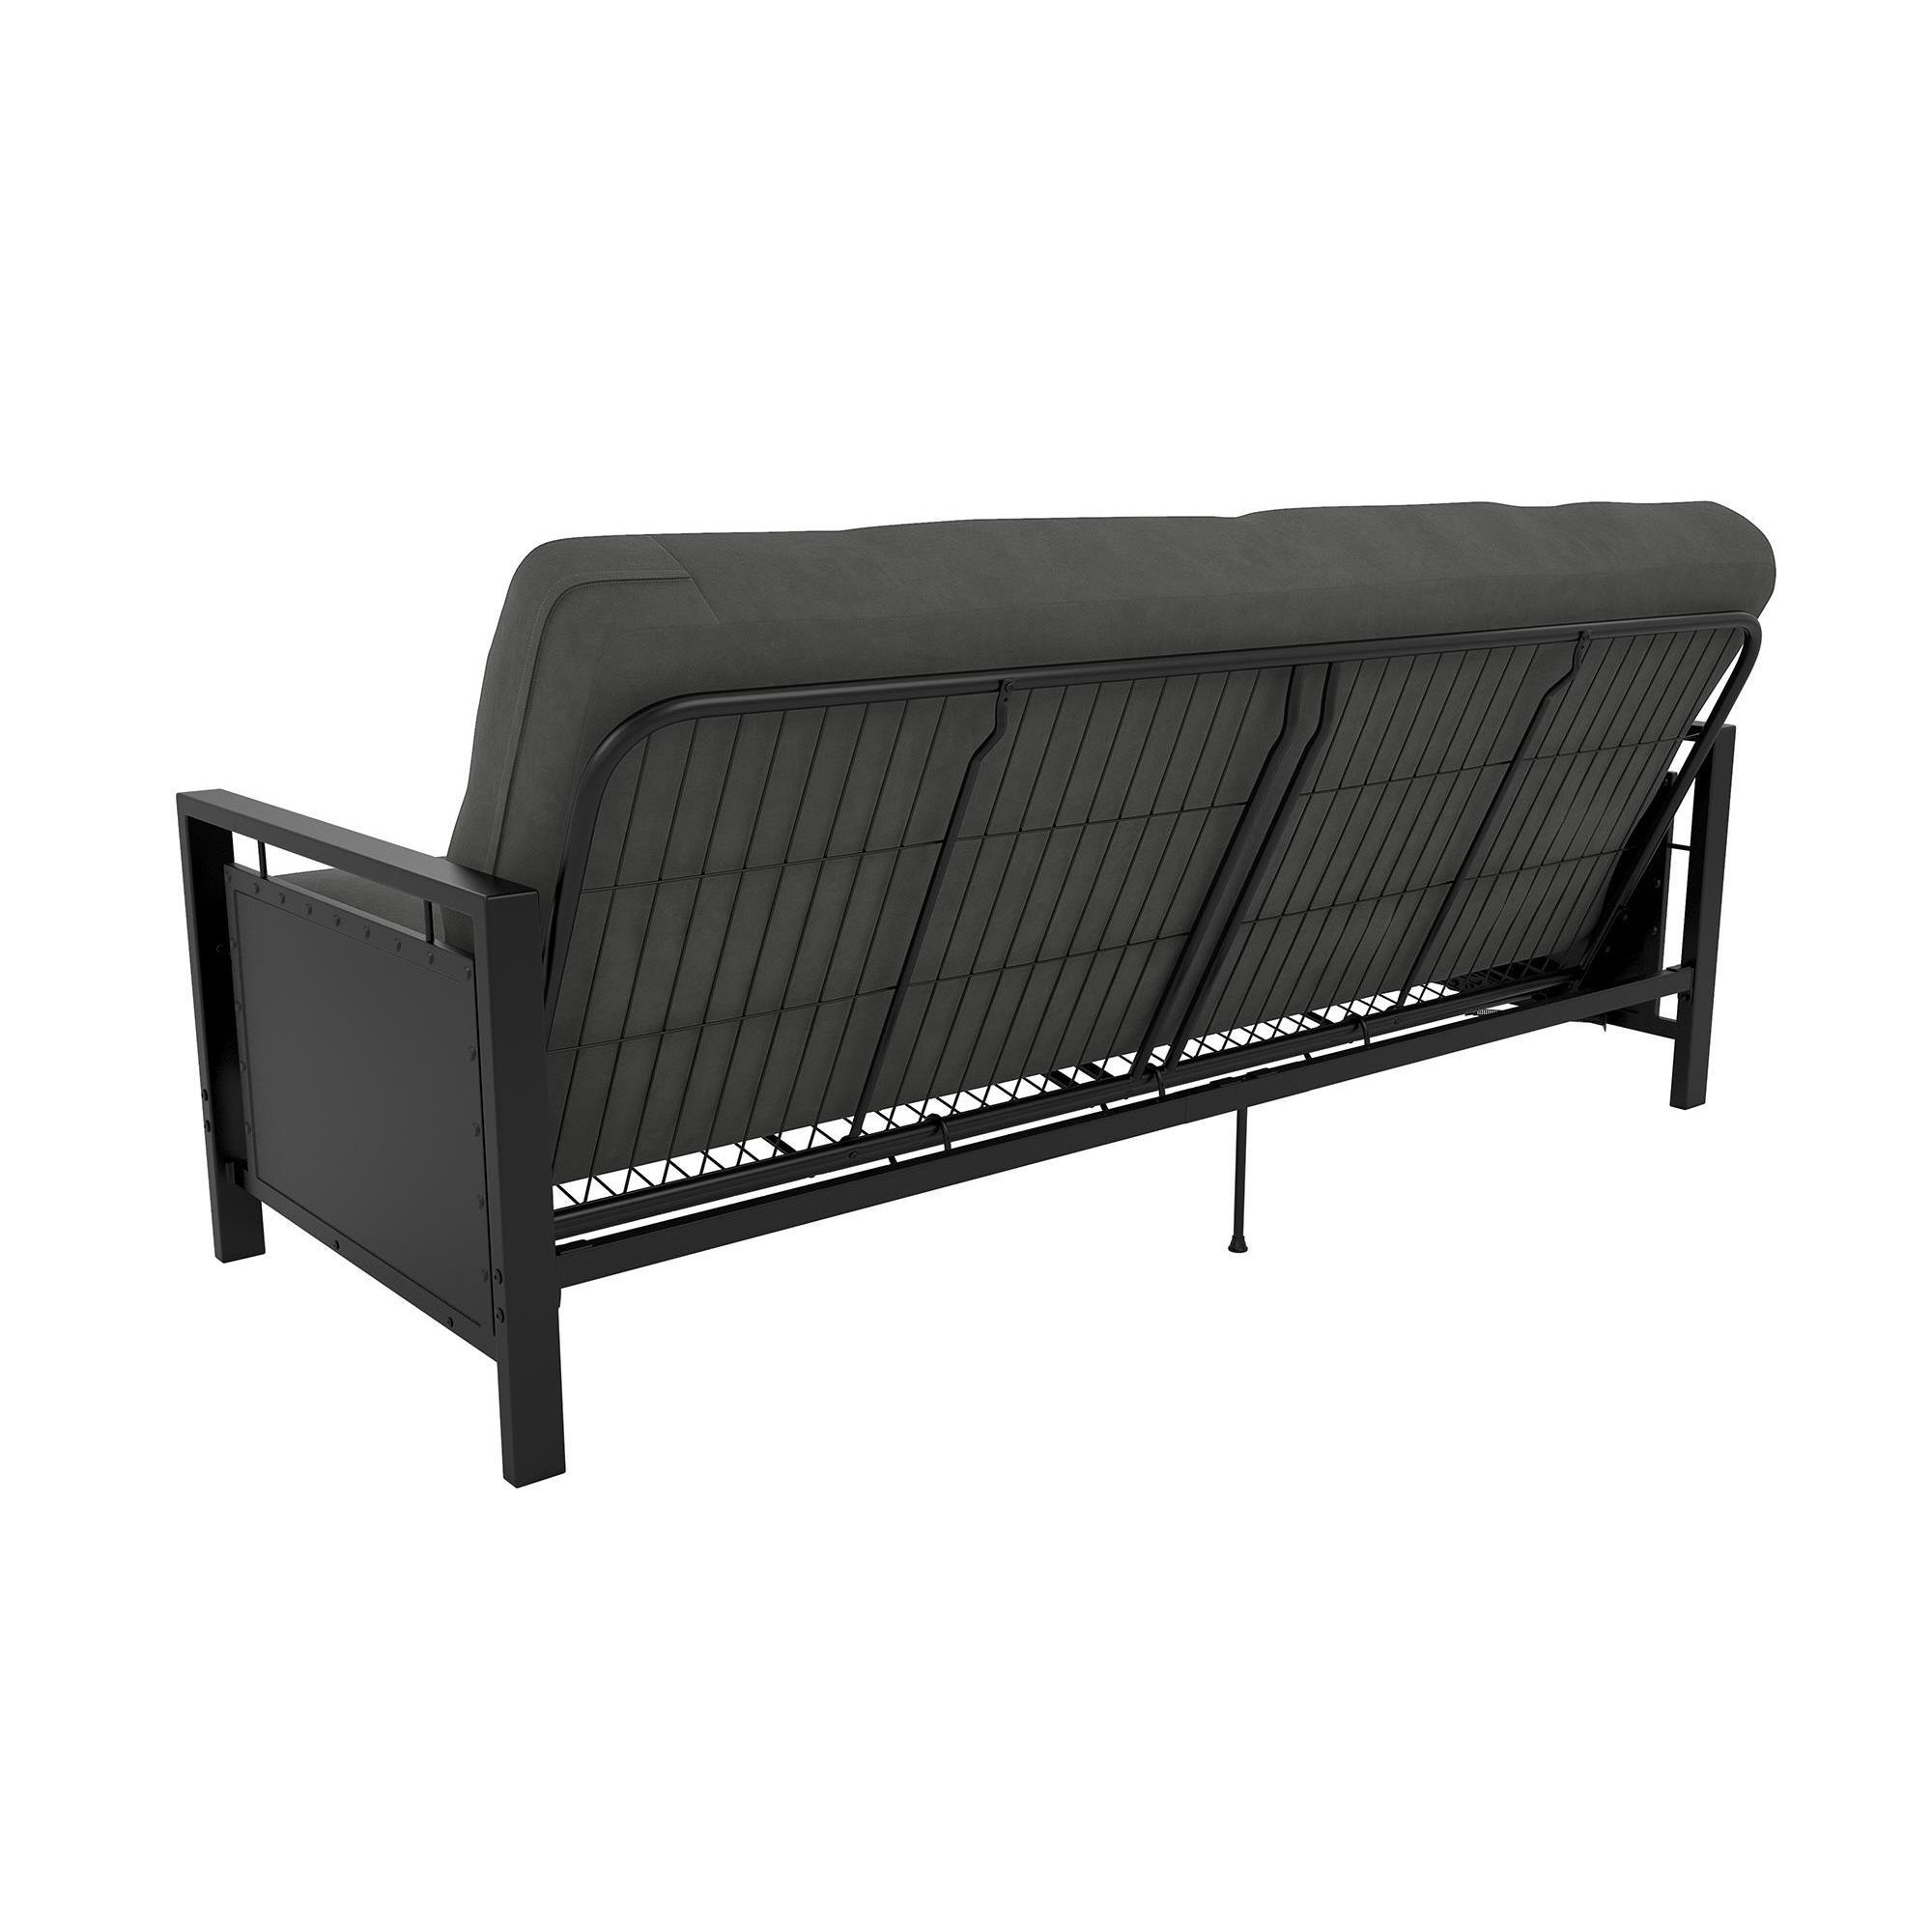 instructions lounge acke metal microfiber bunk bed futons black info cover wood futon assembly target frame